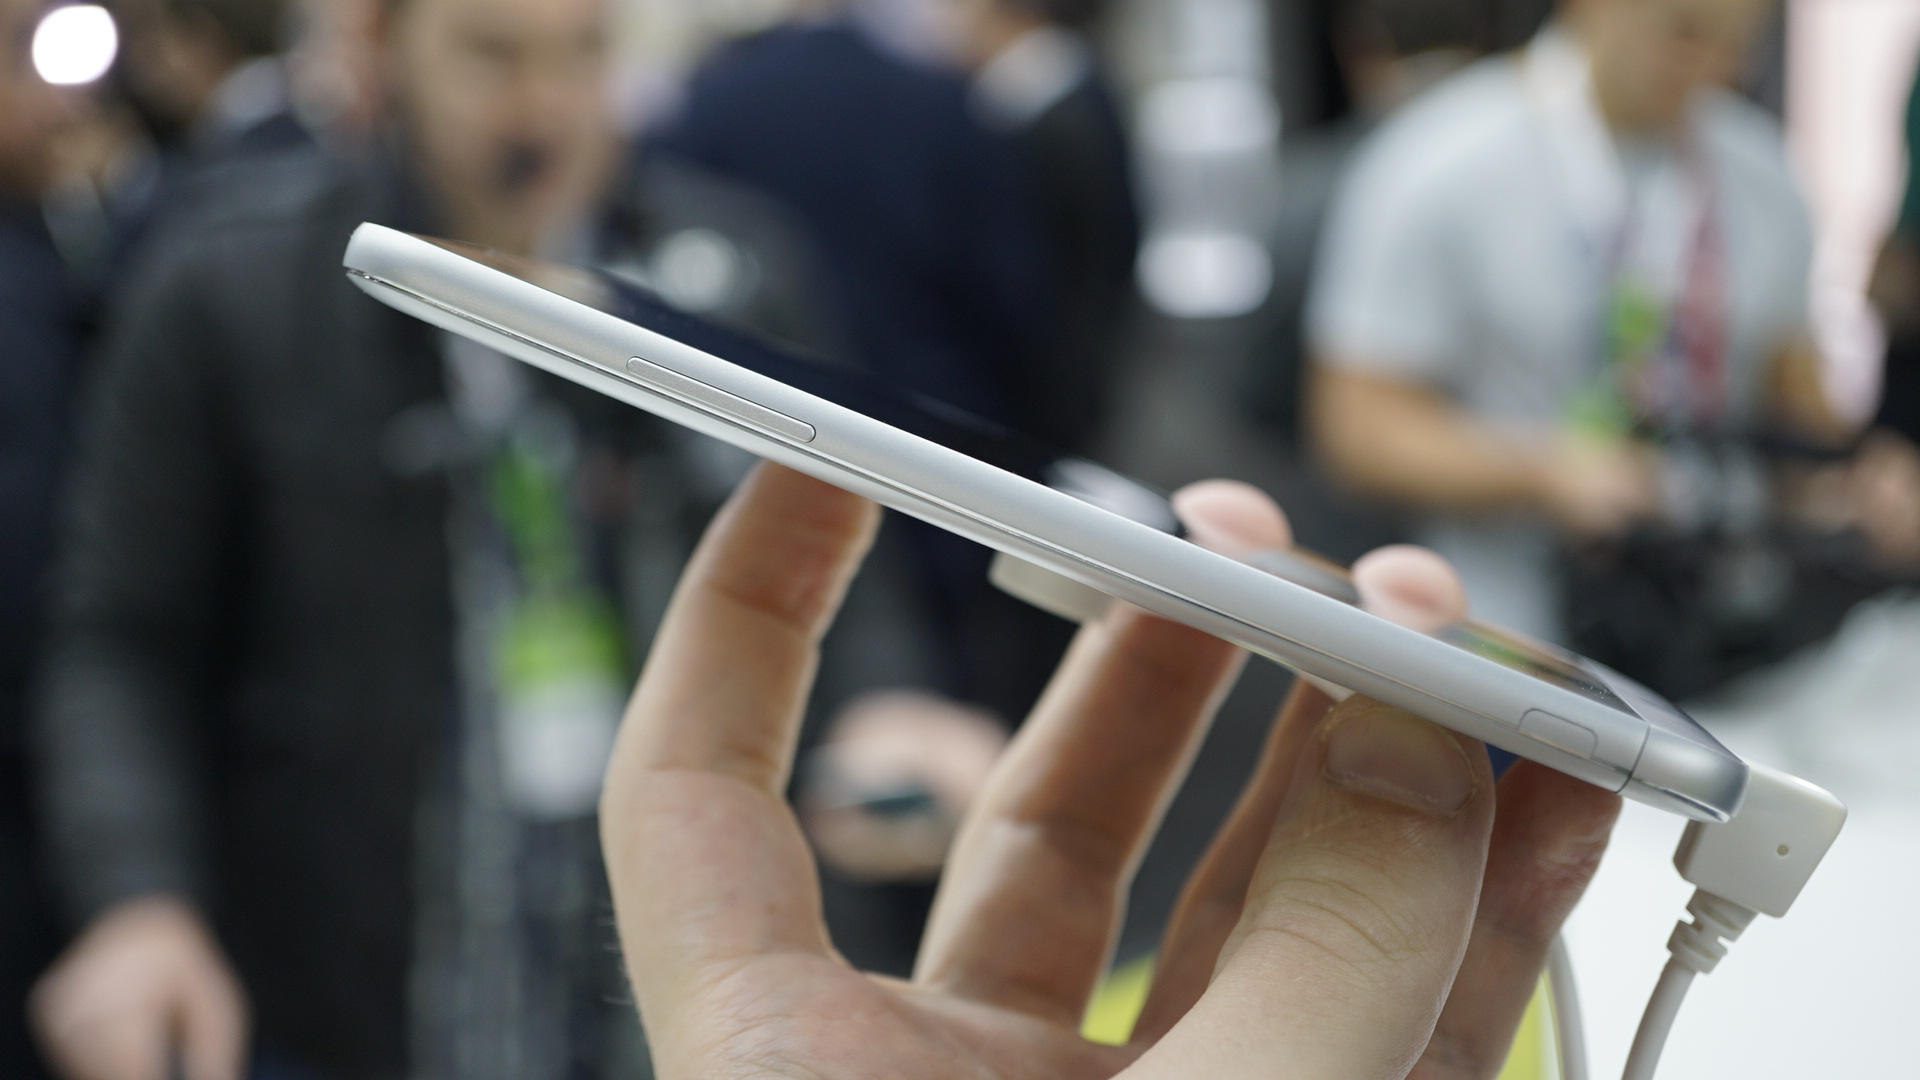 lg-g5-mwc-hands-on-set-2-11